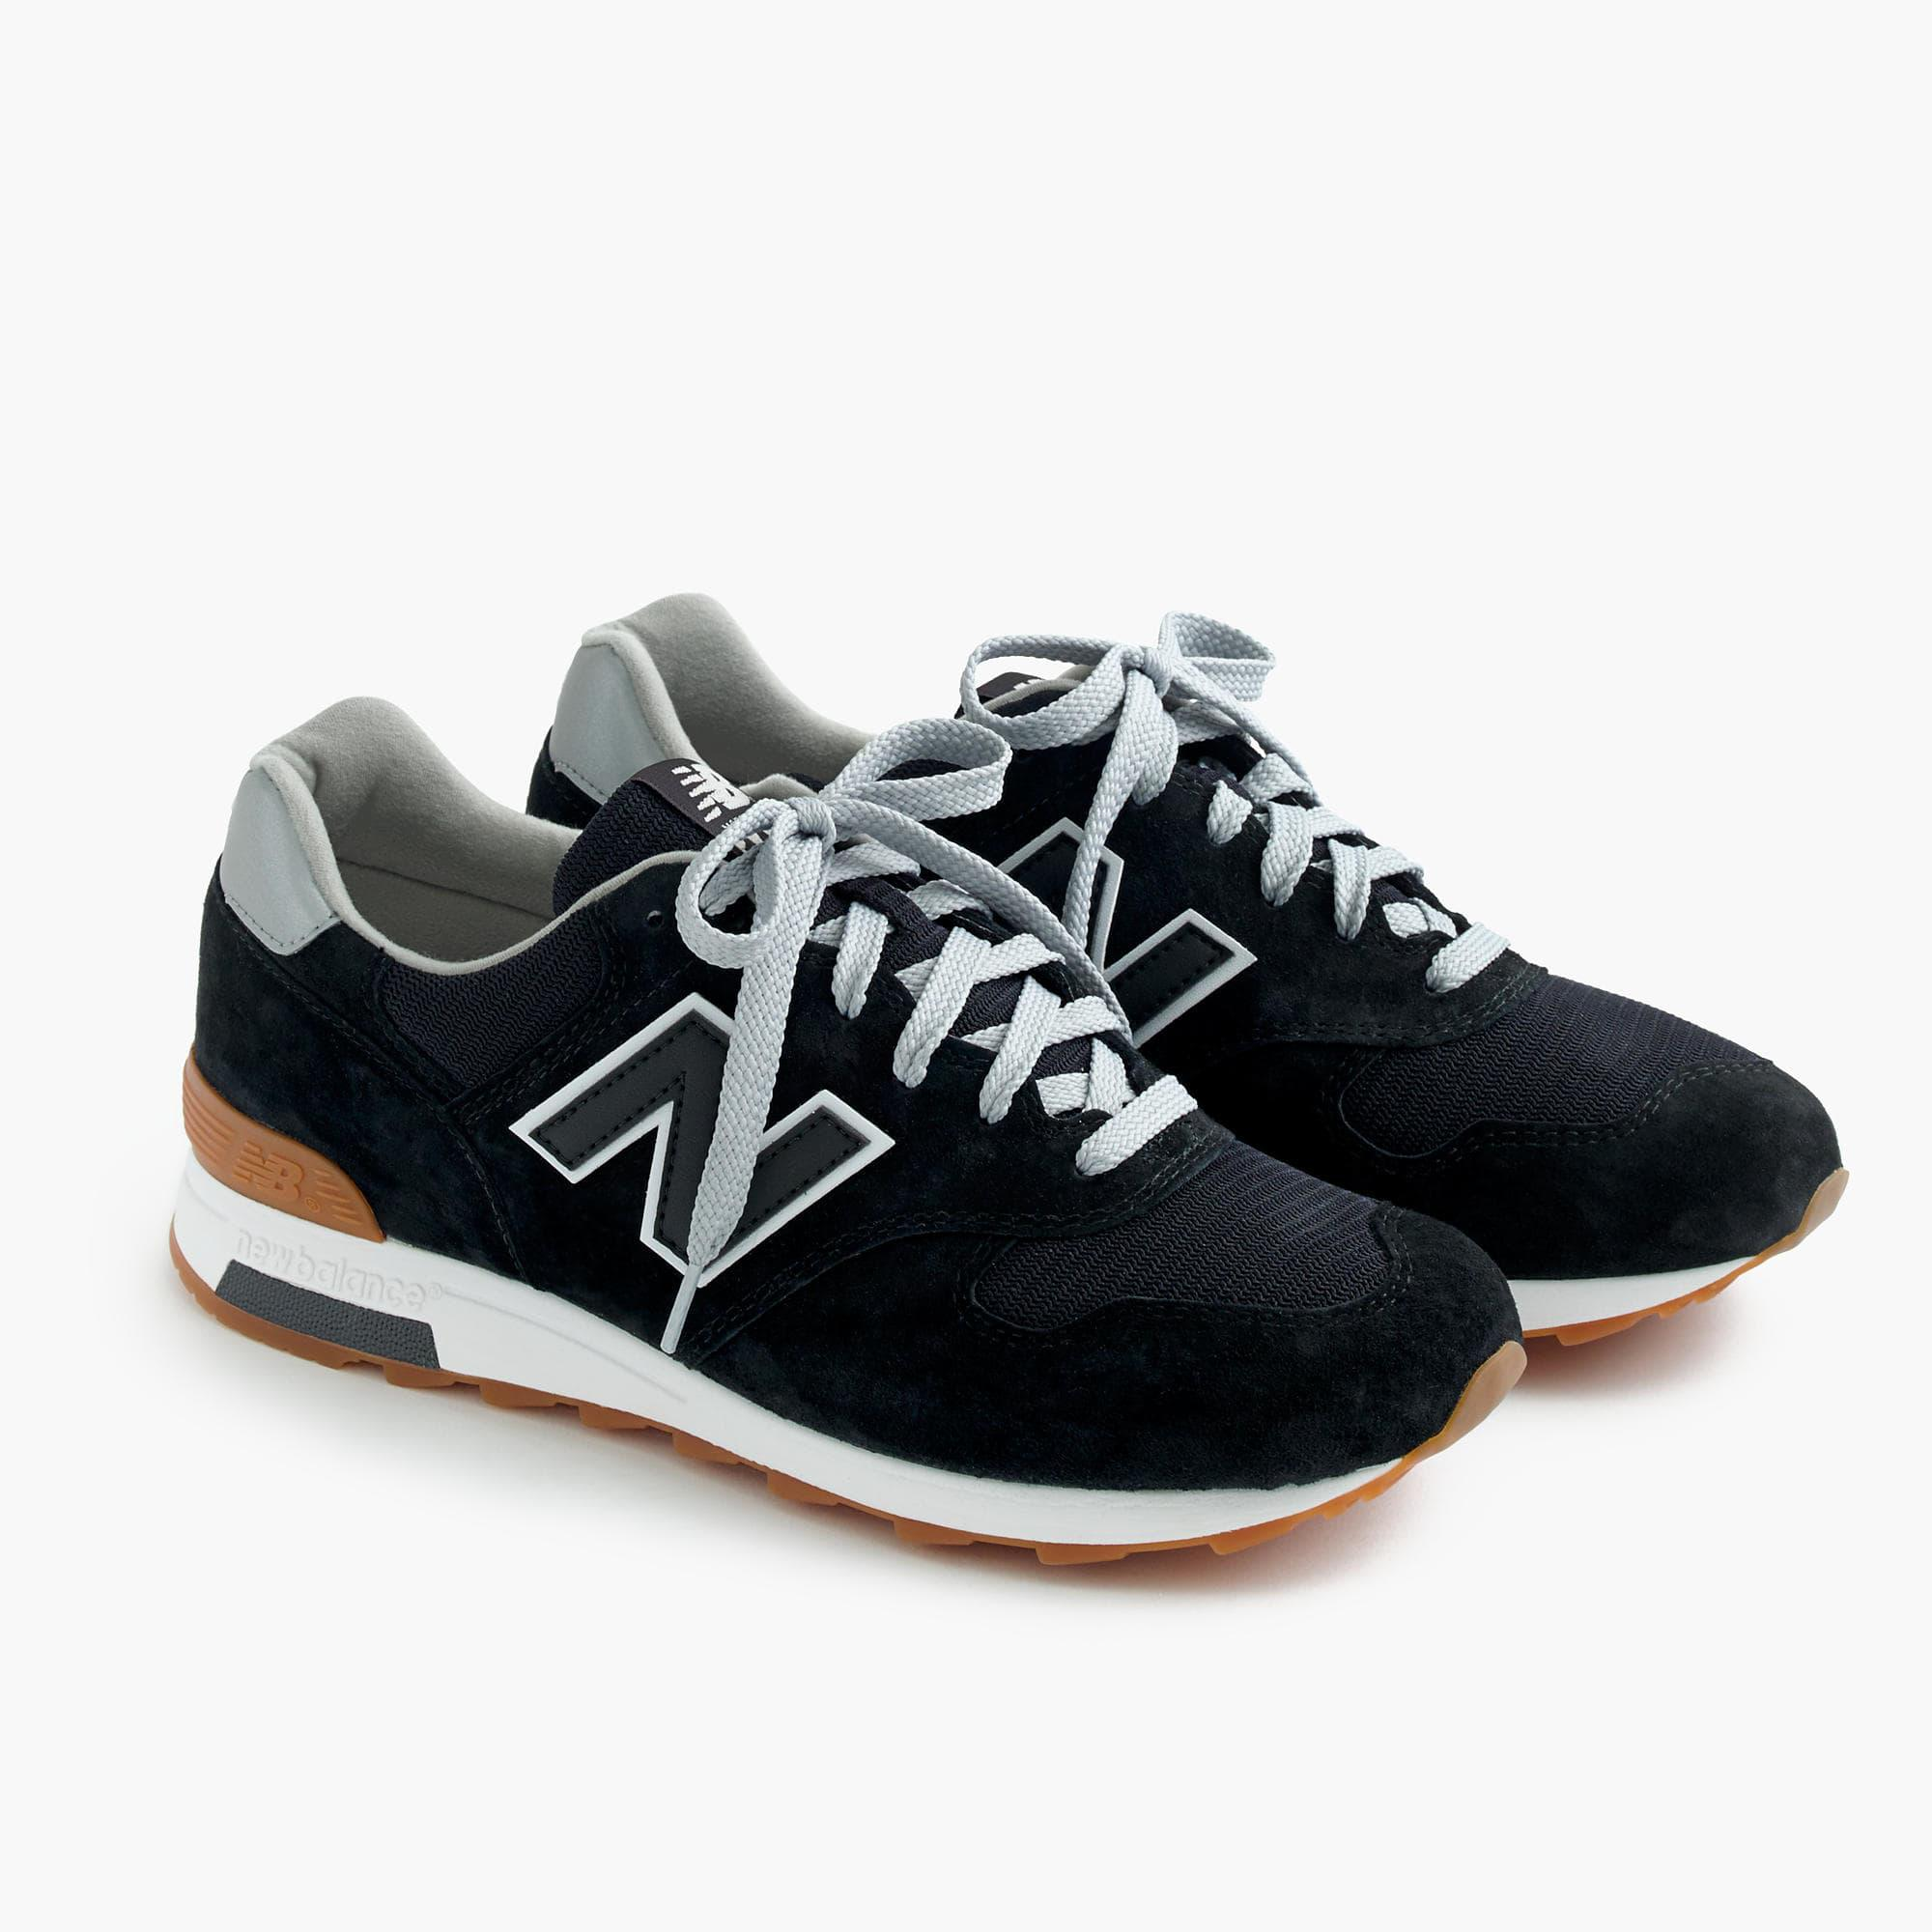 New Balance Suede 1400 Sneakers In Black - Lyst